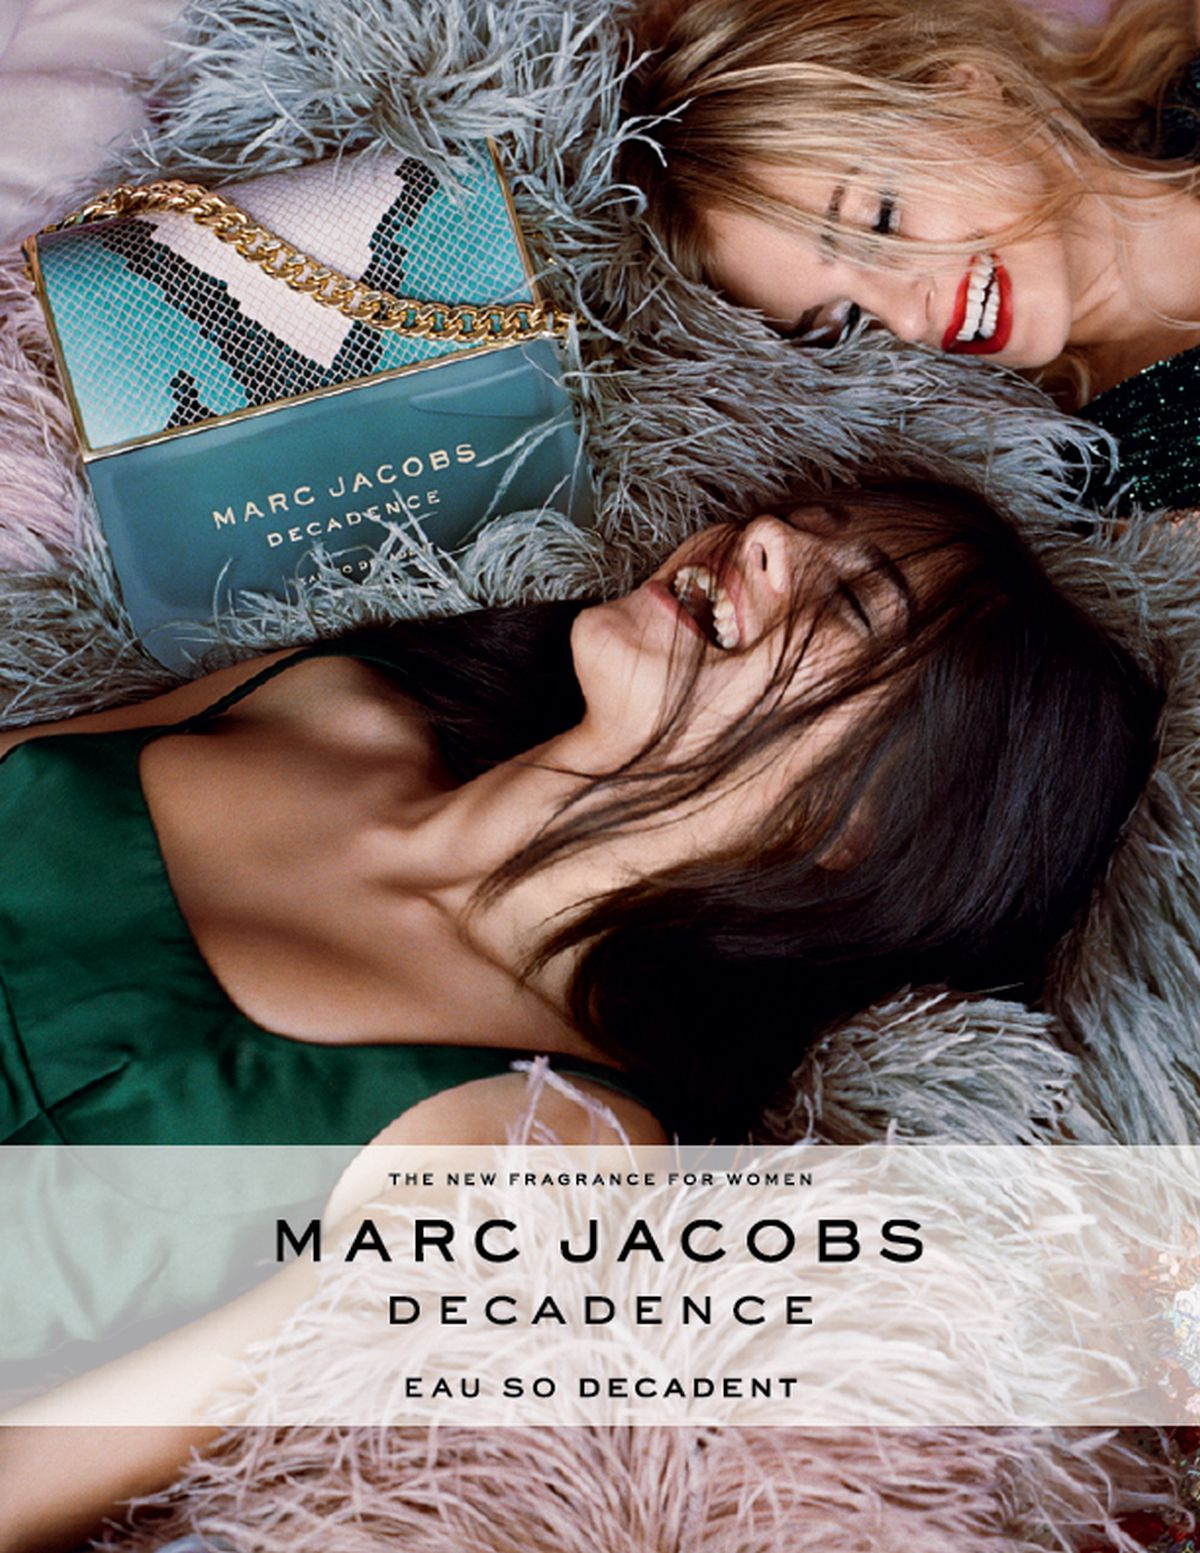 web_marc_jacobs_decadence_esd_sp_ad_080917_FINAL